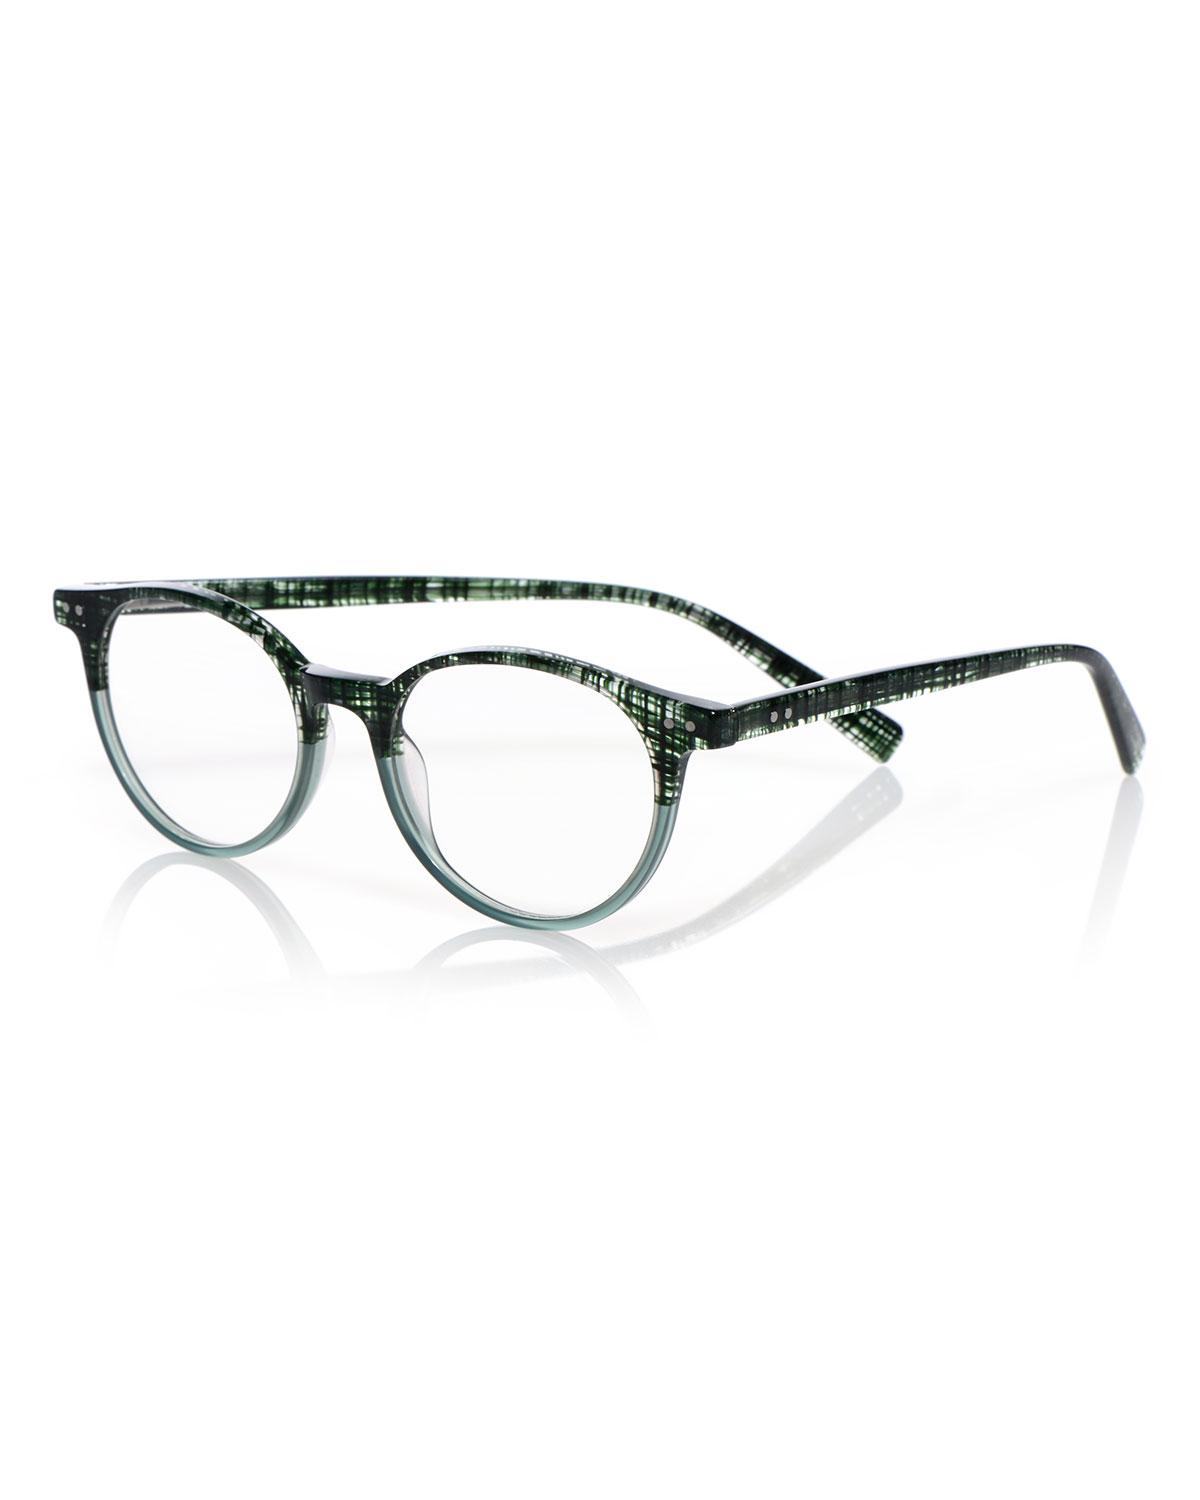 02198c3db10 Eyebobs Case Closed Plaid Acetate Reading Glasses In Green